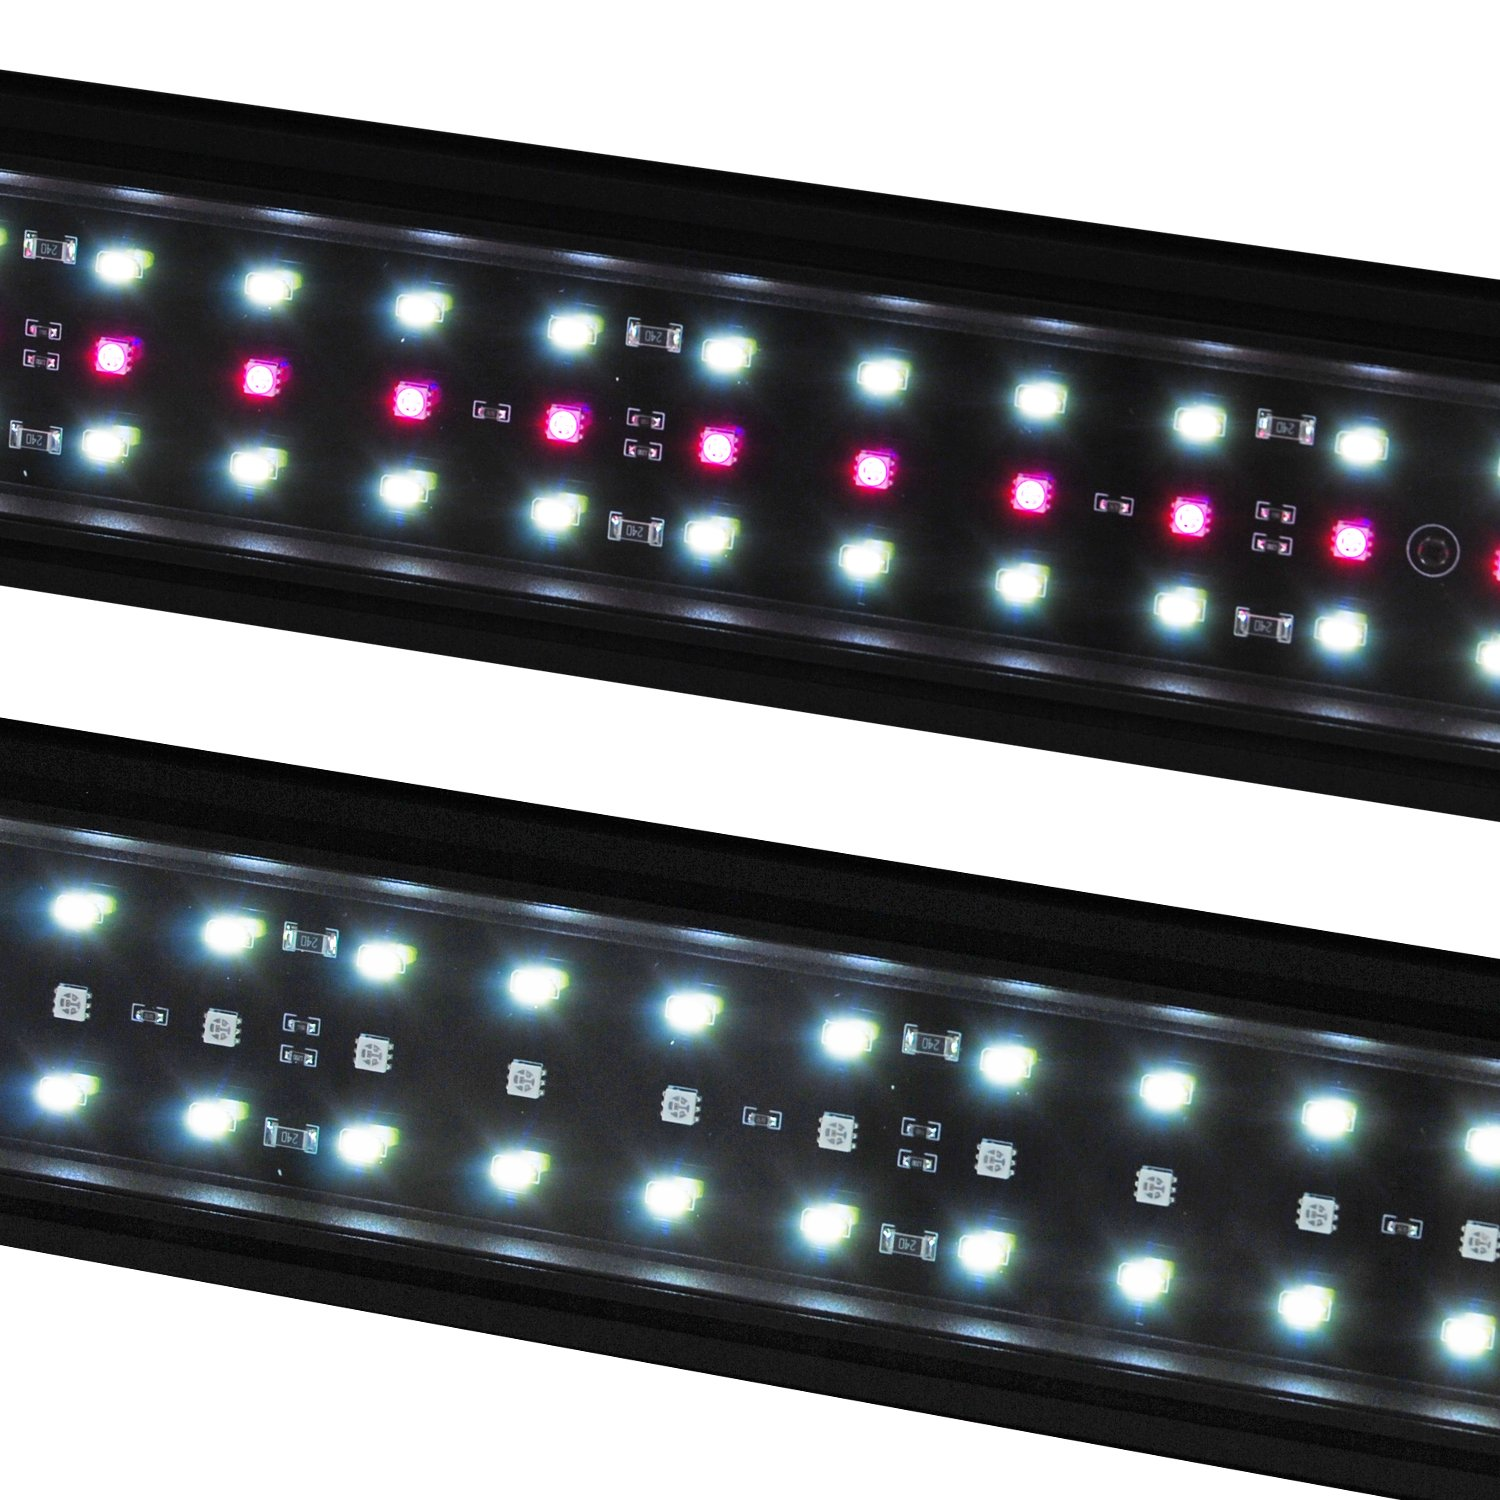 Amazon.com : VivaGrow DN RGB LED Aquarium Light Freshwater Plant 24/7 Remote Automation (90cm - 36